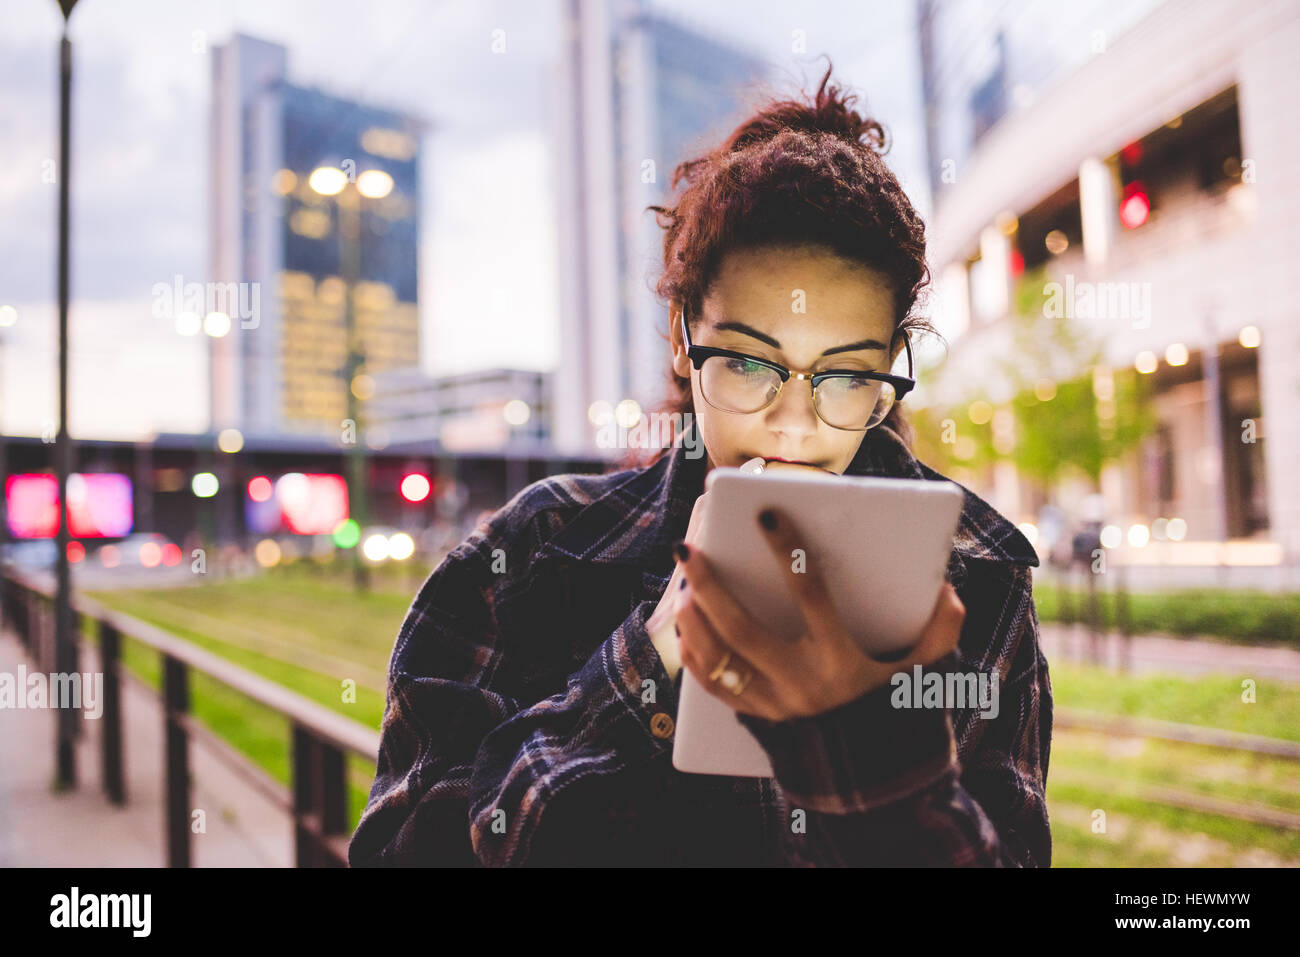 Woman in urban area using digital tablet, Milan, Italy - Stock Image